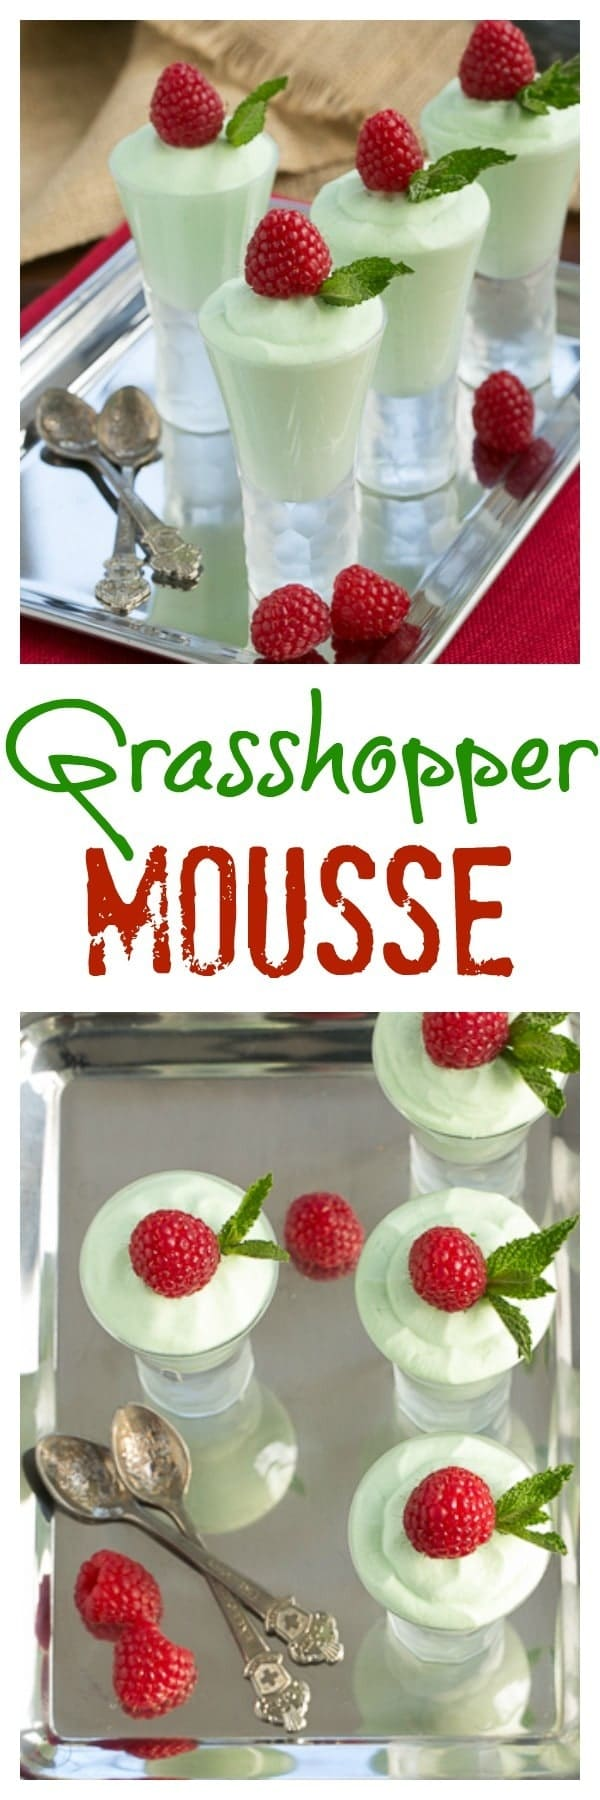 Grasshopper Mousse - Creme de Menthe and White Chocolate create an irresistible dessert #mousse #mint #grasshopper #easyrecipe